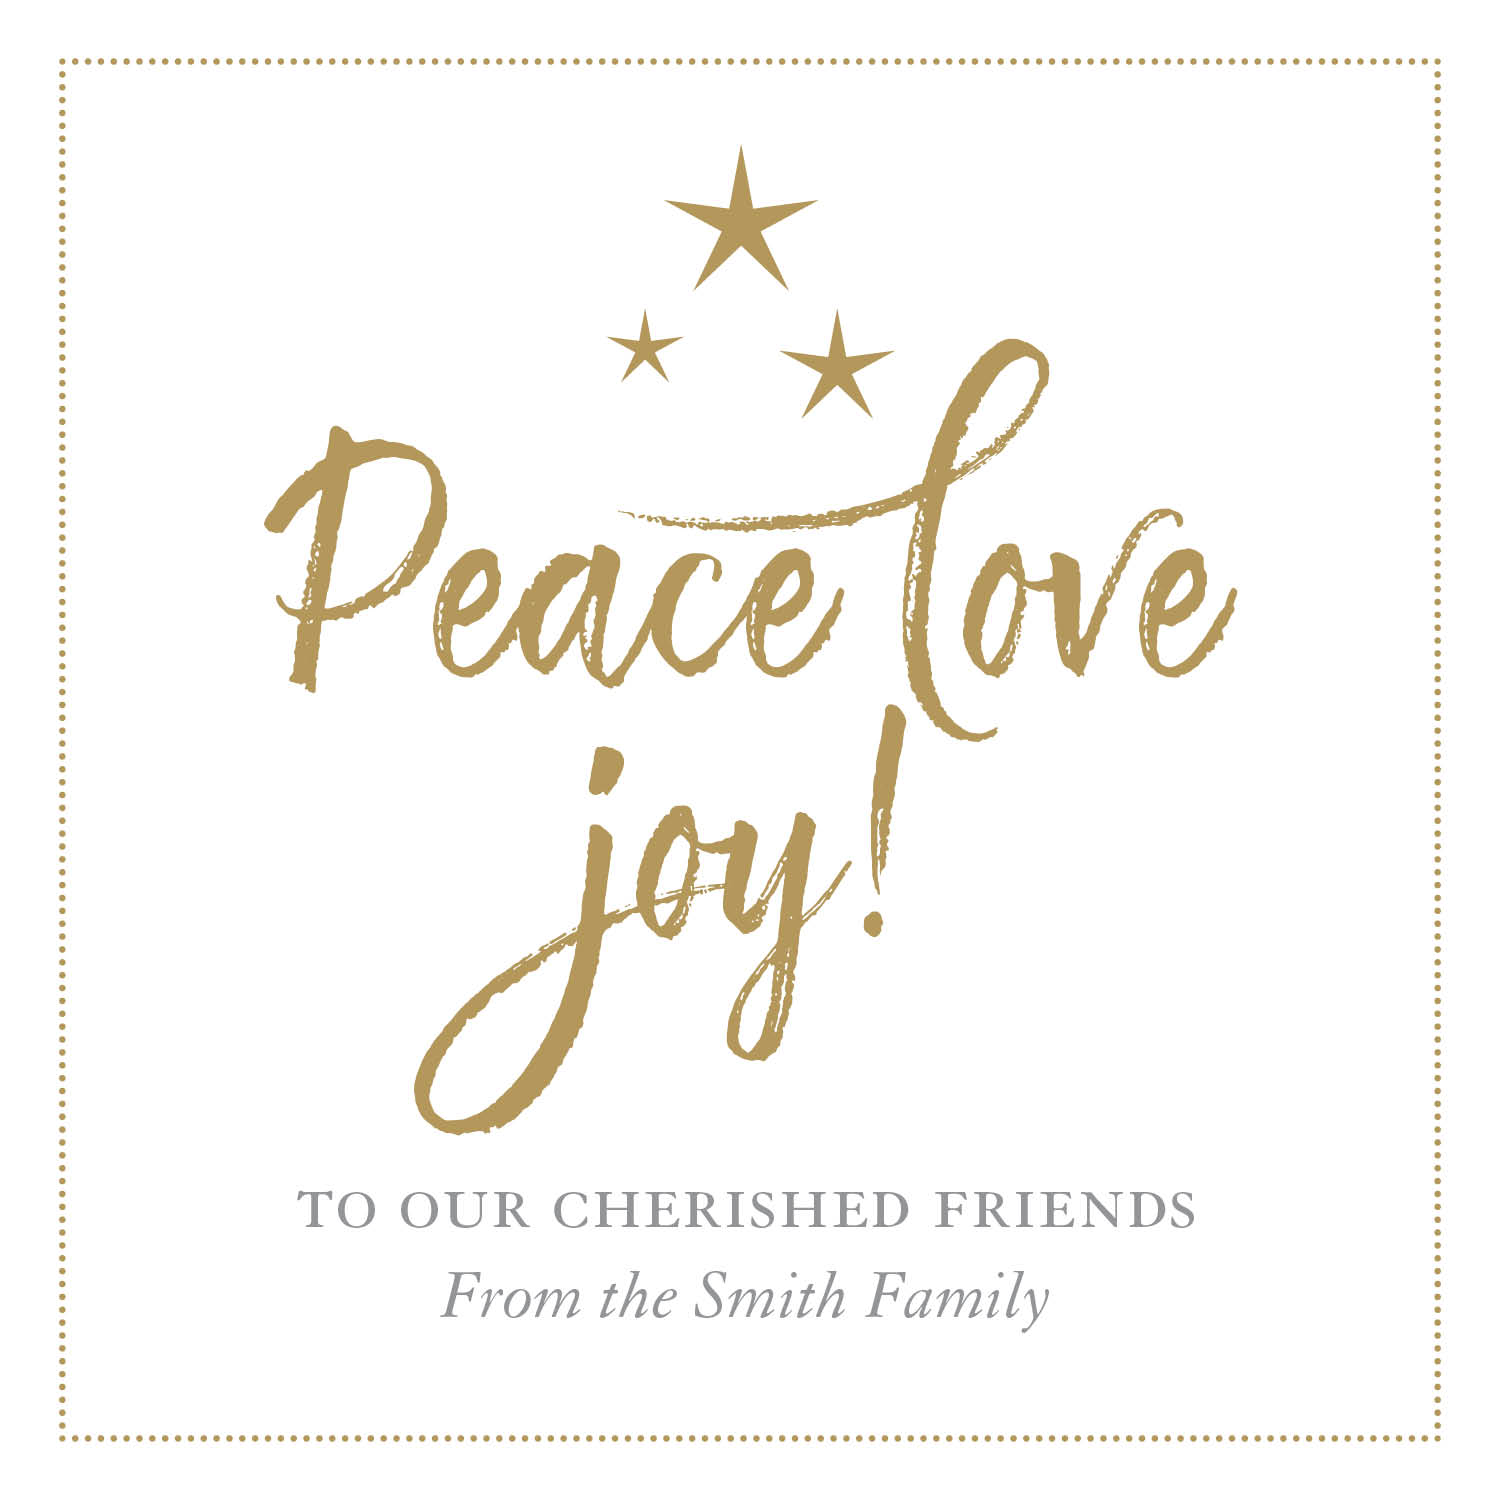 Peace, love, joy!